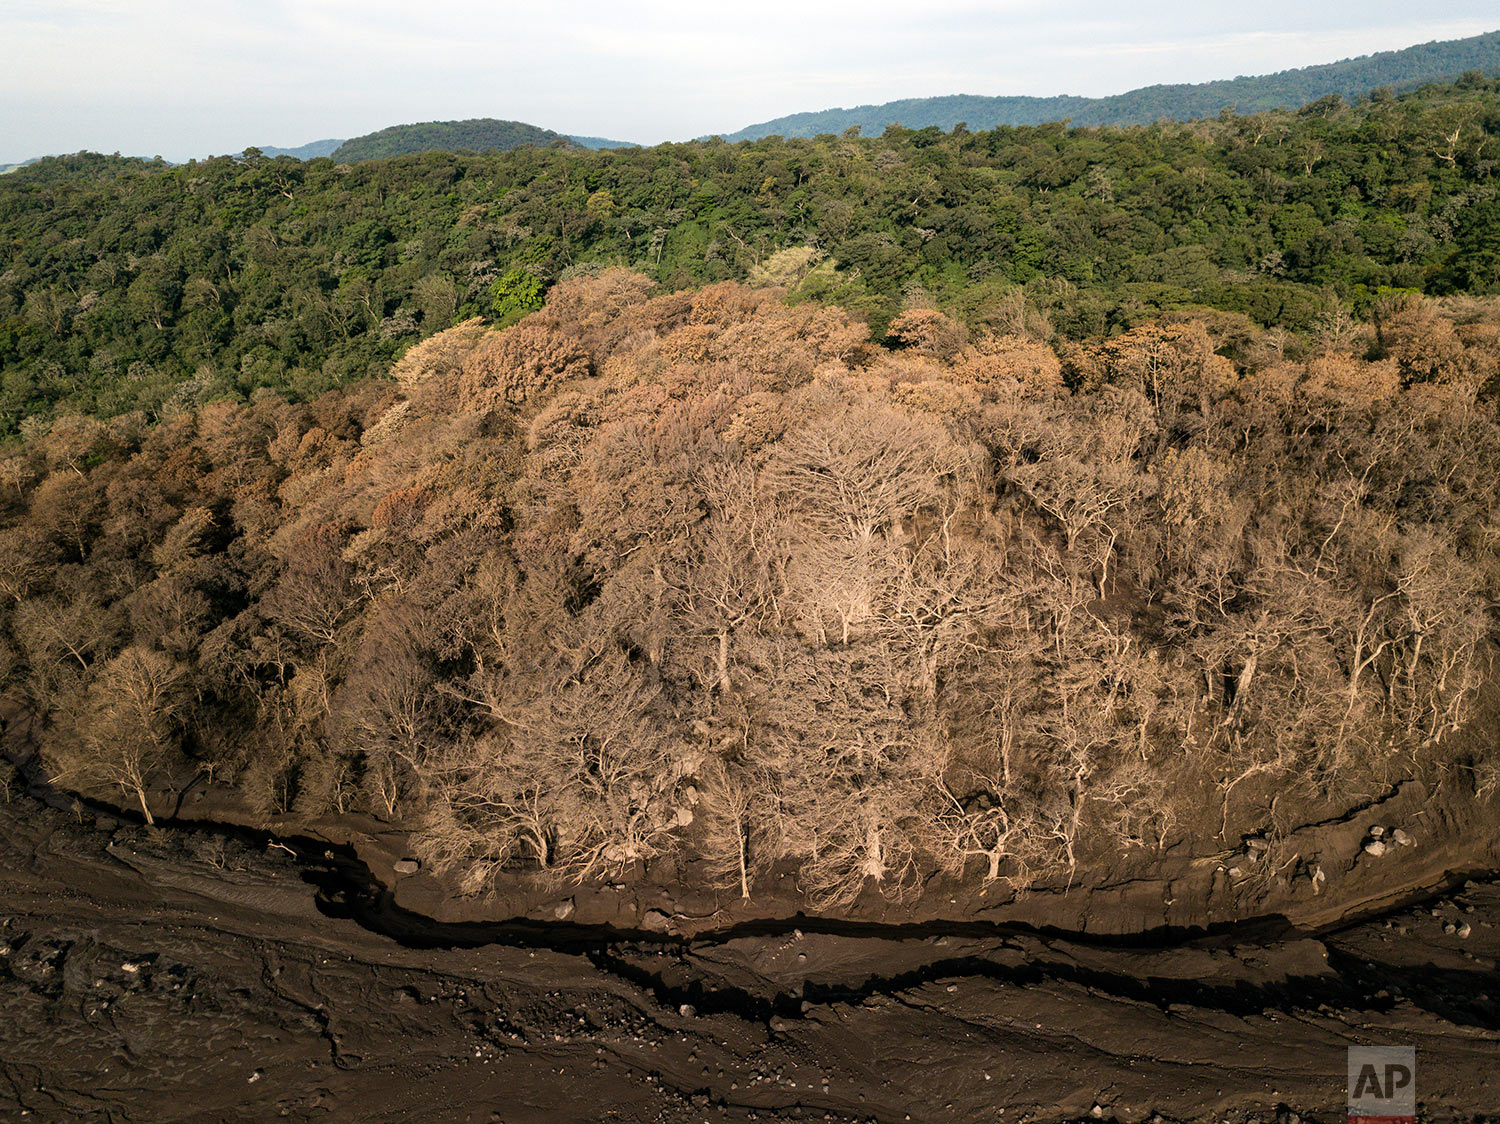 In this June 18, 2018 photo, trees stand burned along the path that volcanic ash and rock plowed through during the eruption of the Volcano of Fire in San Miguel Los Lotes, Guatemala. (AP Photo/Rodrigo Abd)